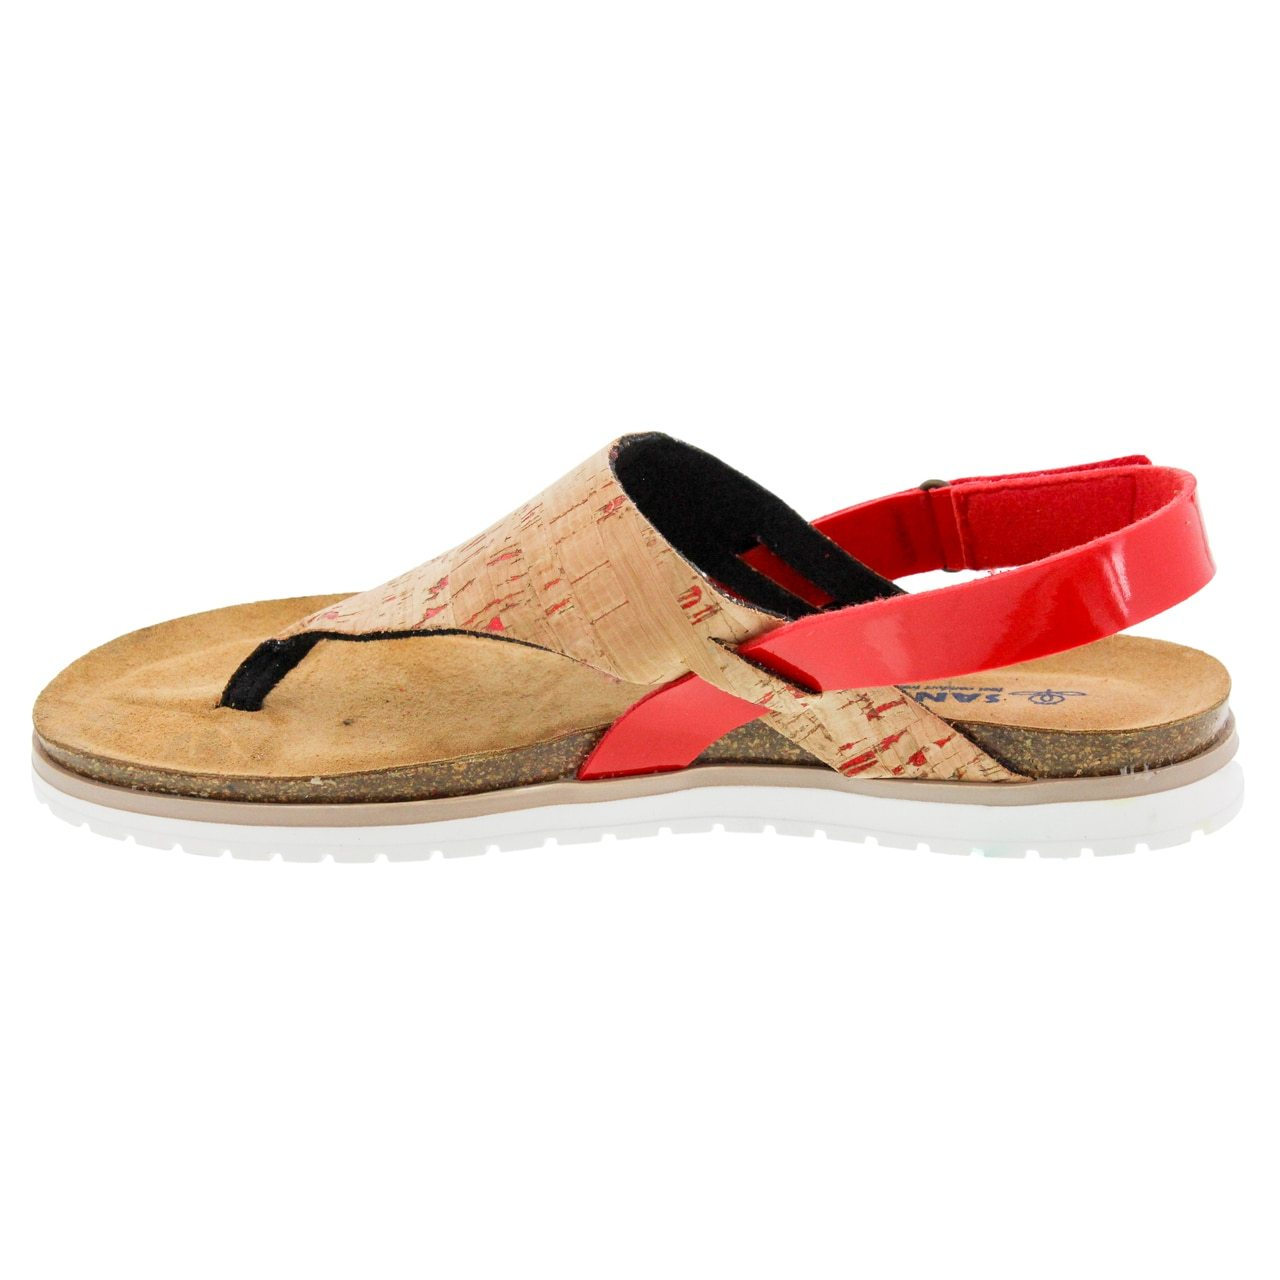 a9f30d9794 Sanosan Aleah Cork Leather Thong Sandal - Comfort Plus – Sanosan ...